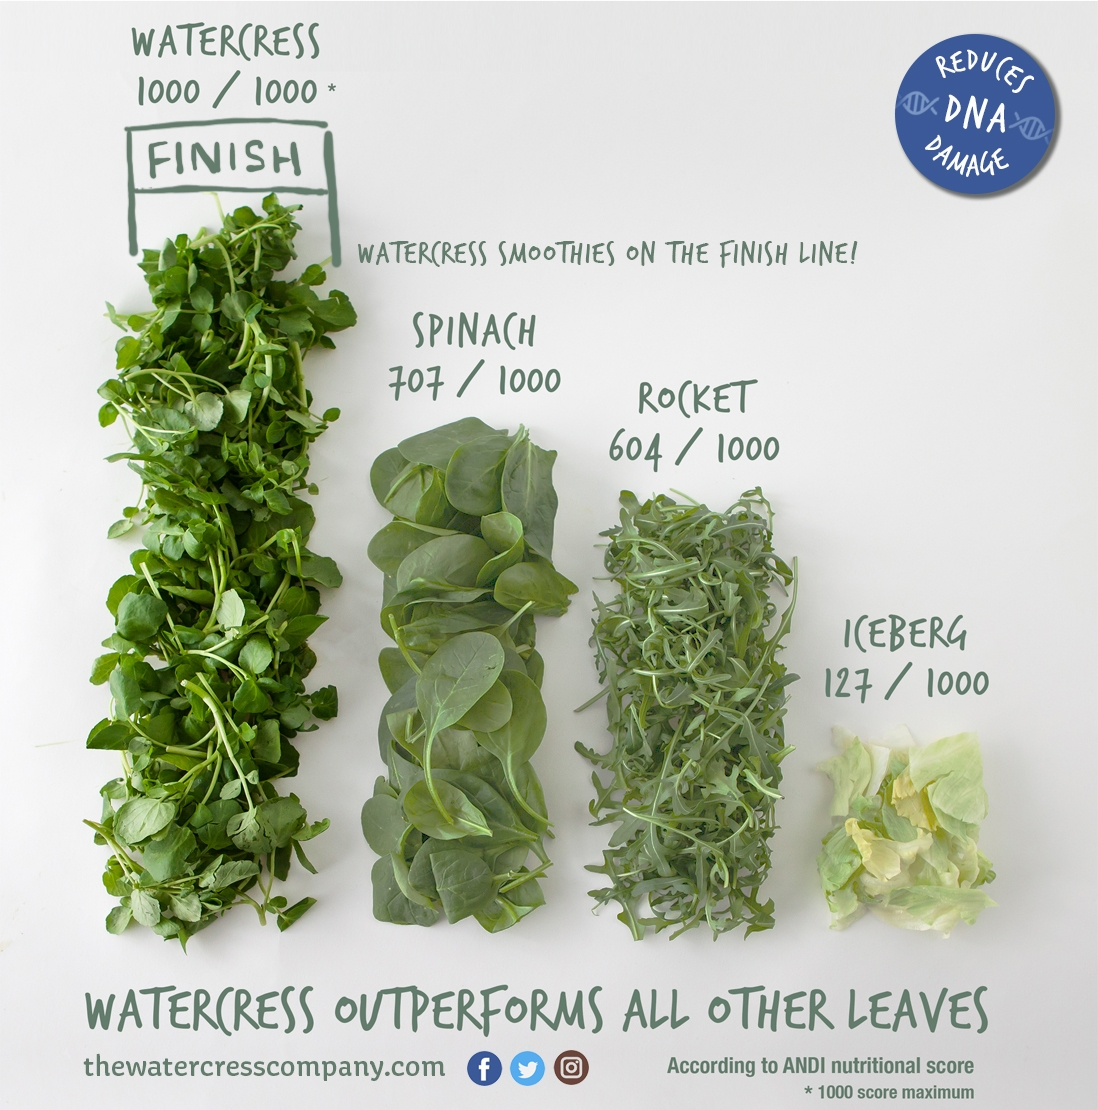 See how watercress is the winner of all the salads - The Super Salad.